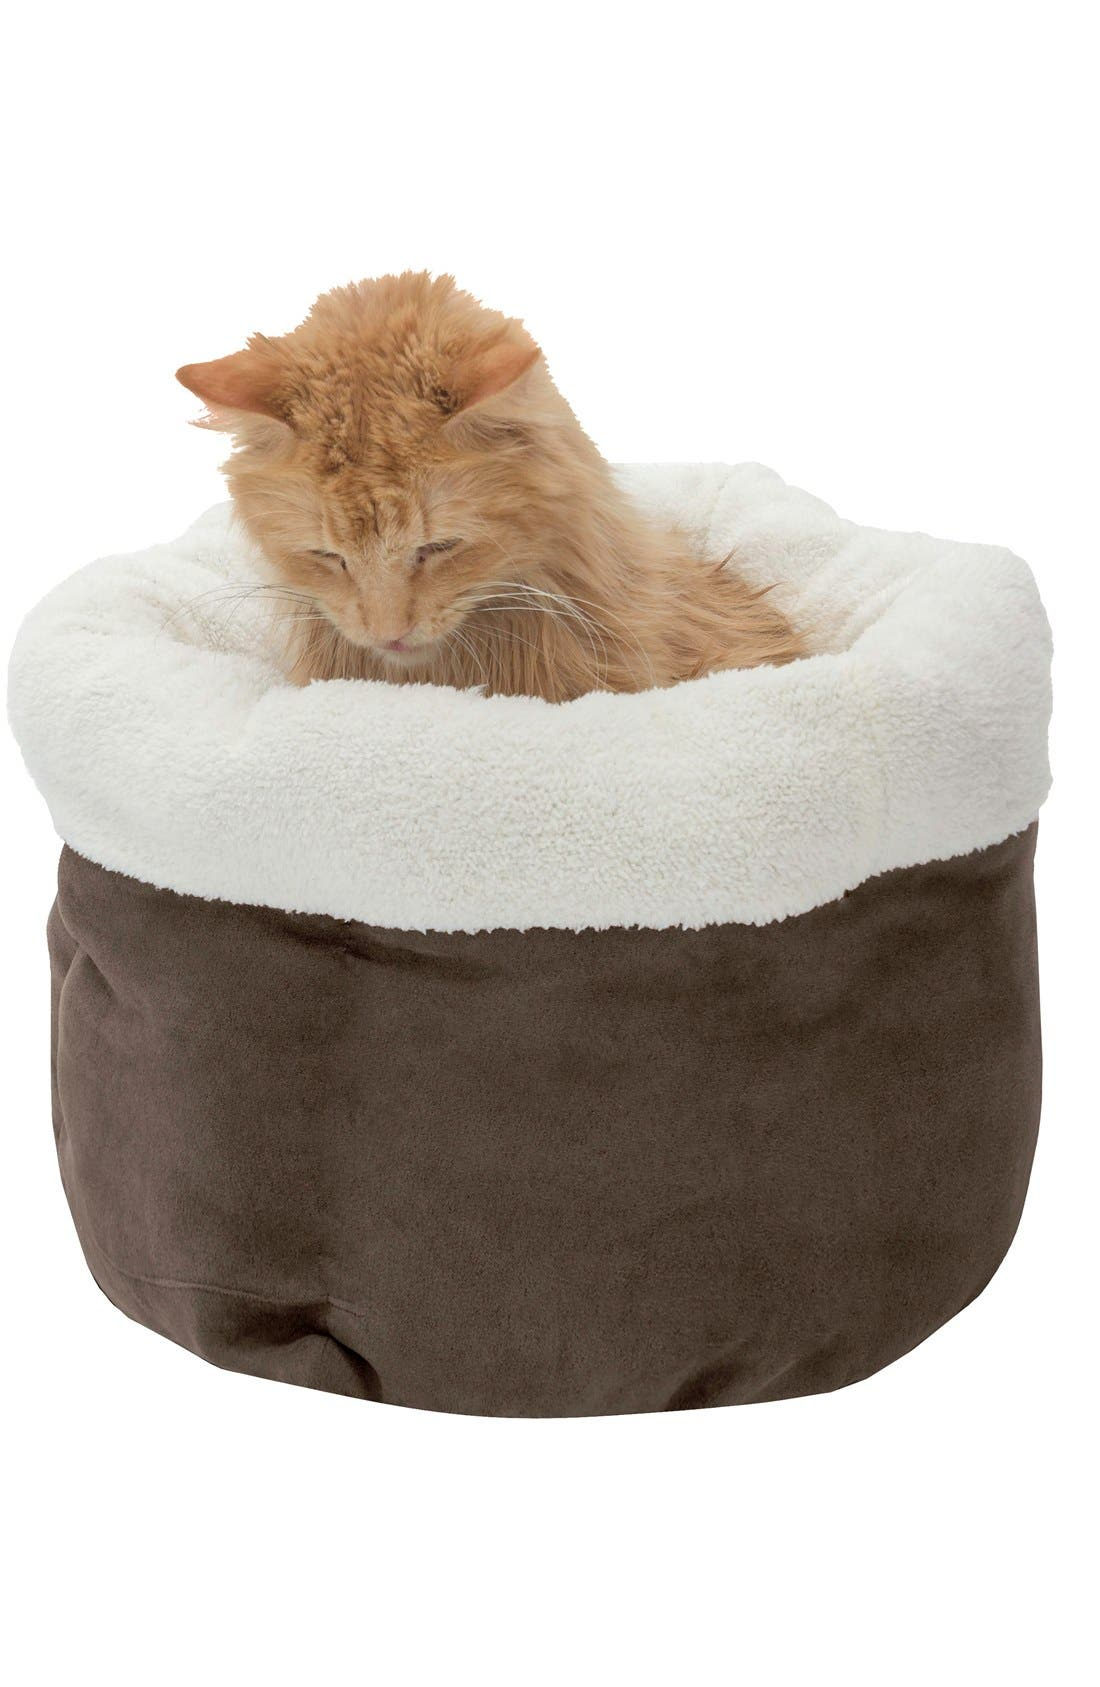 Duck River Textile Barclay Pet Bed